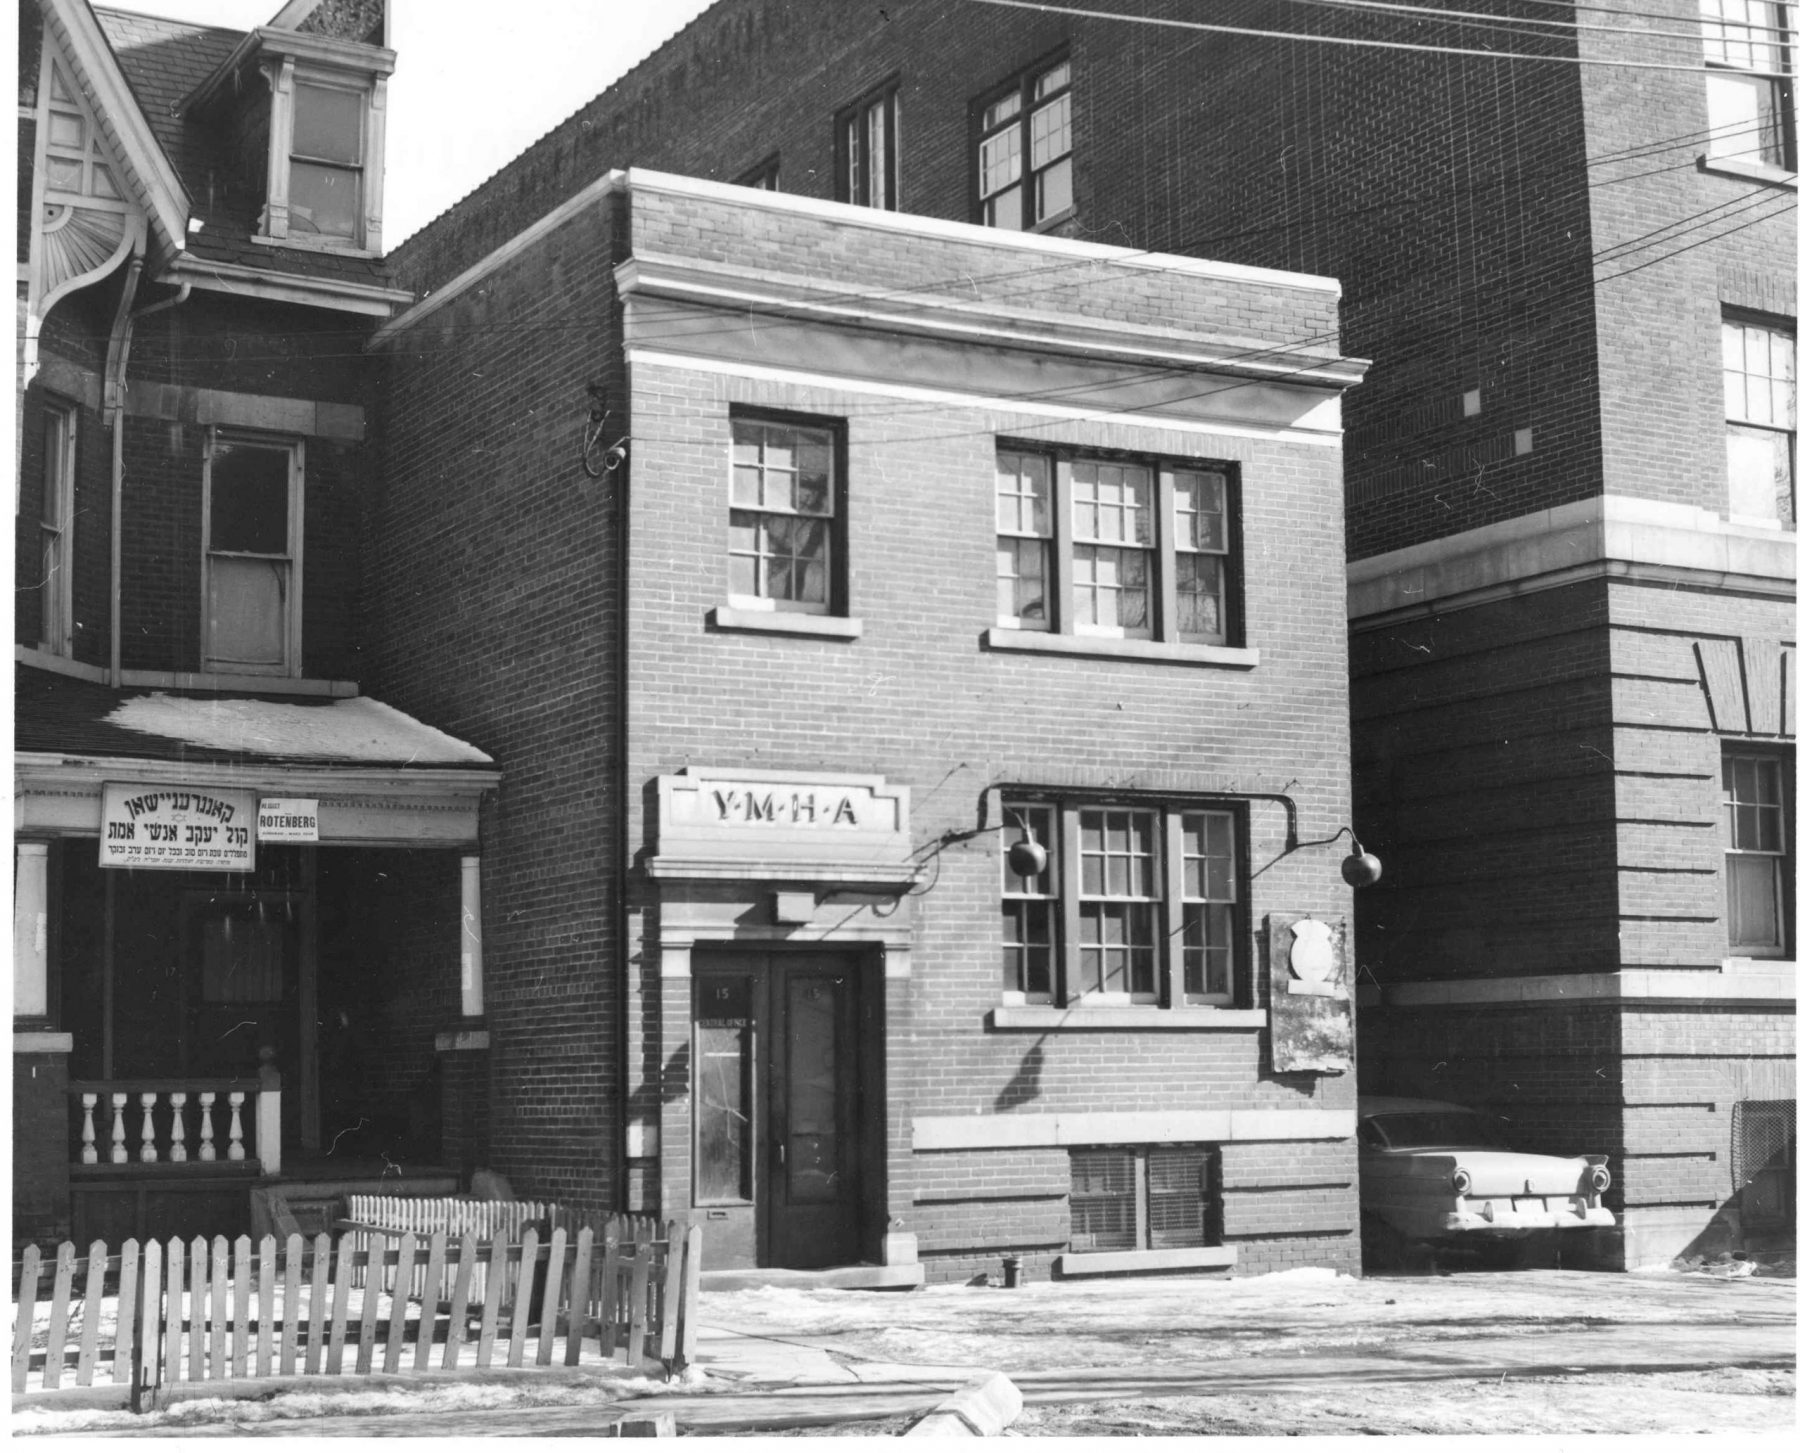 """YM-YWHA building, 15 Brunswick Avenue, ca. 1960. For almost two decades, the 'Y"""" activities occurred at rooms rented in the Brunswick Avenue and College Street area, as well as the basement facilities of the Brunswick Avenue Talmud Torah. However, these spaces became overcrowded due to the growing membership and so this building was constructed in 1937, next door to the Talmud Torah to ease overcrowding.   OJA, fonds 61, series 2-2, file 44, item 3."""